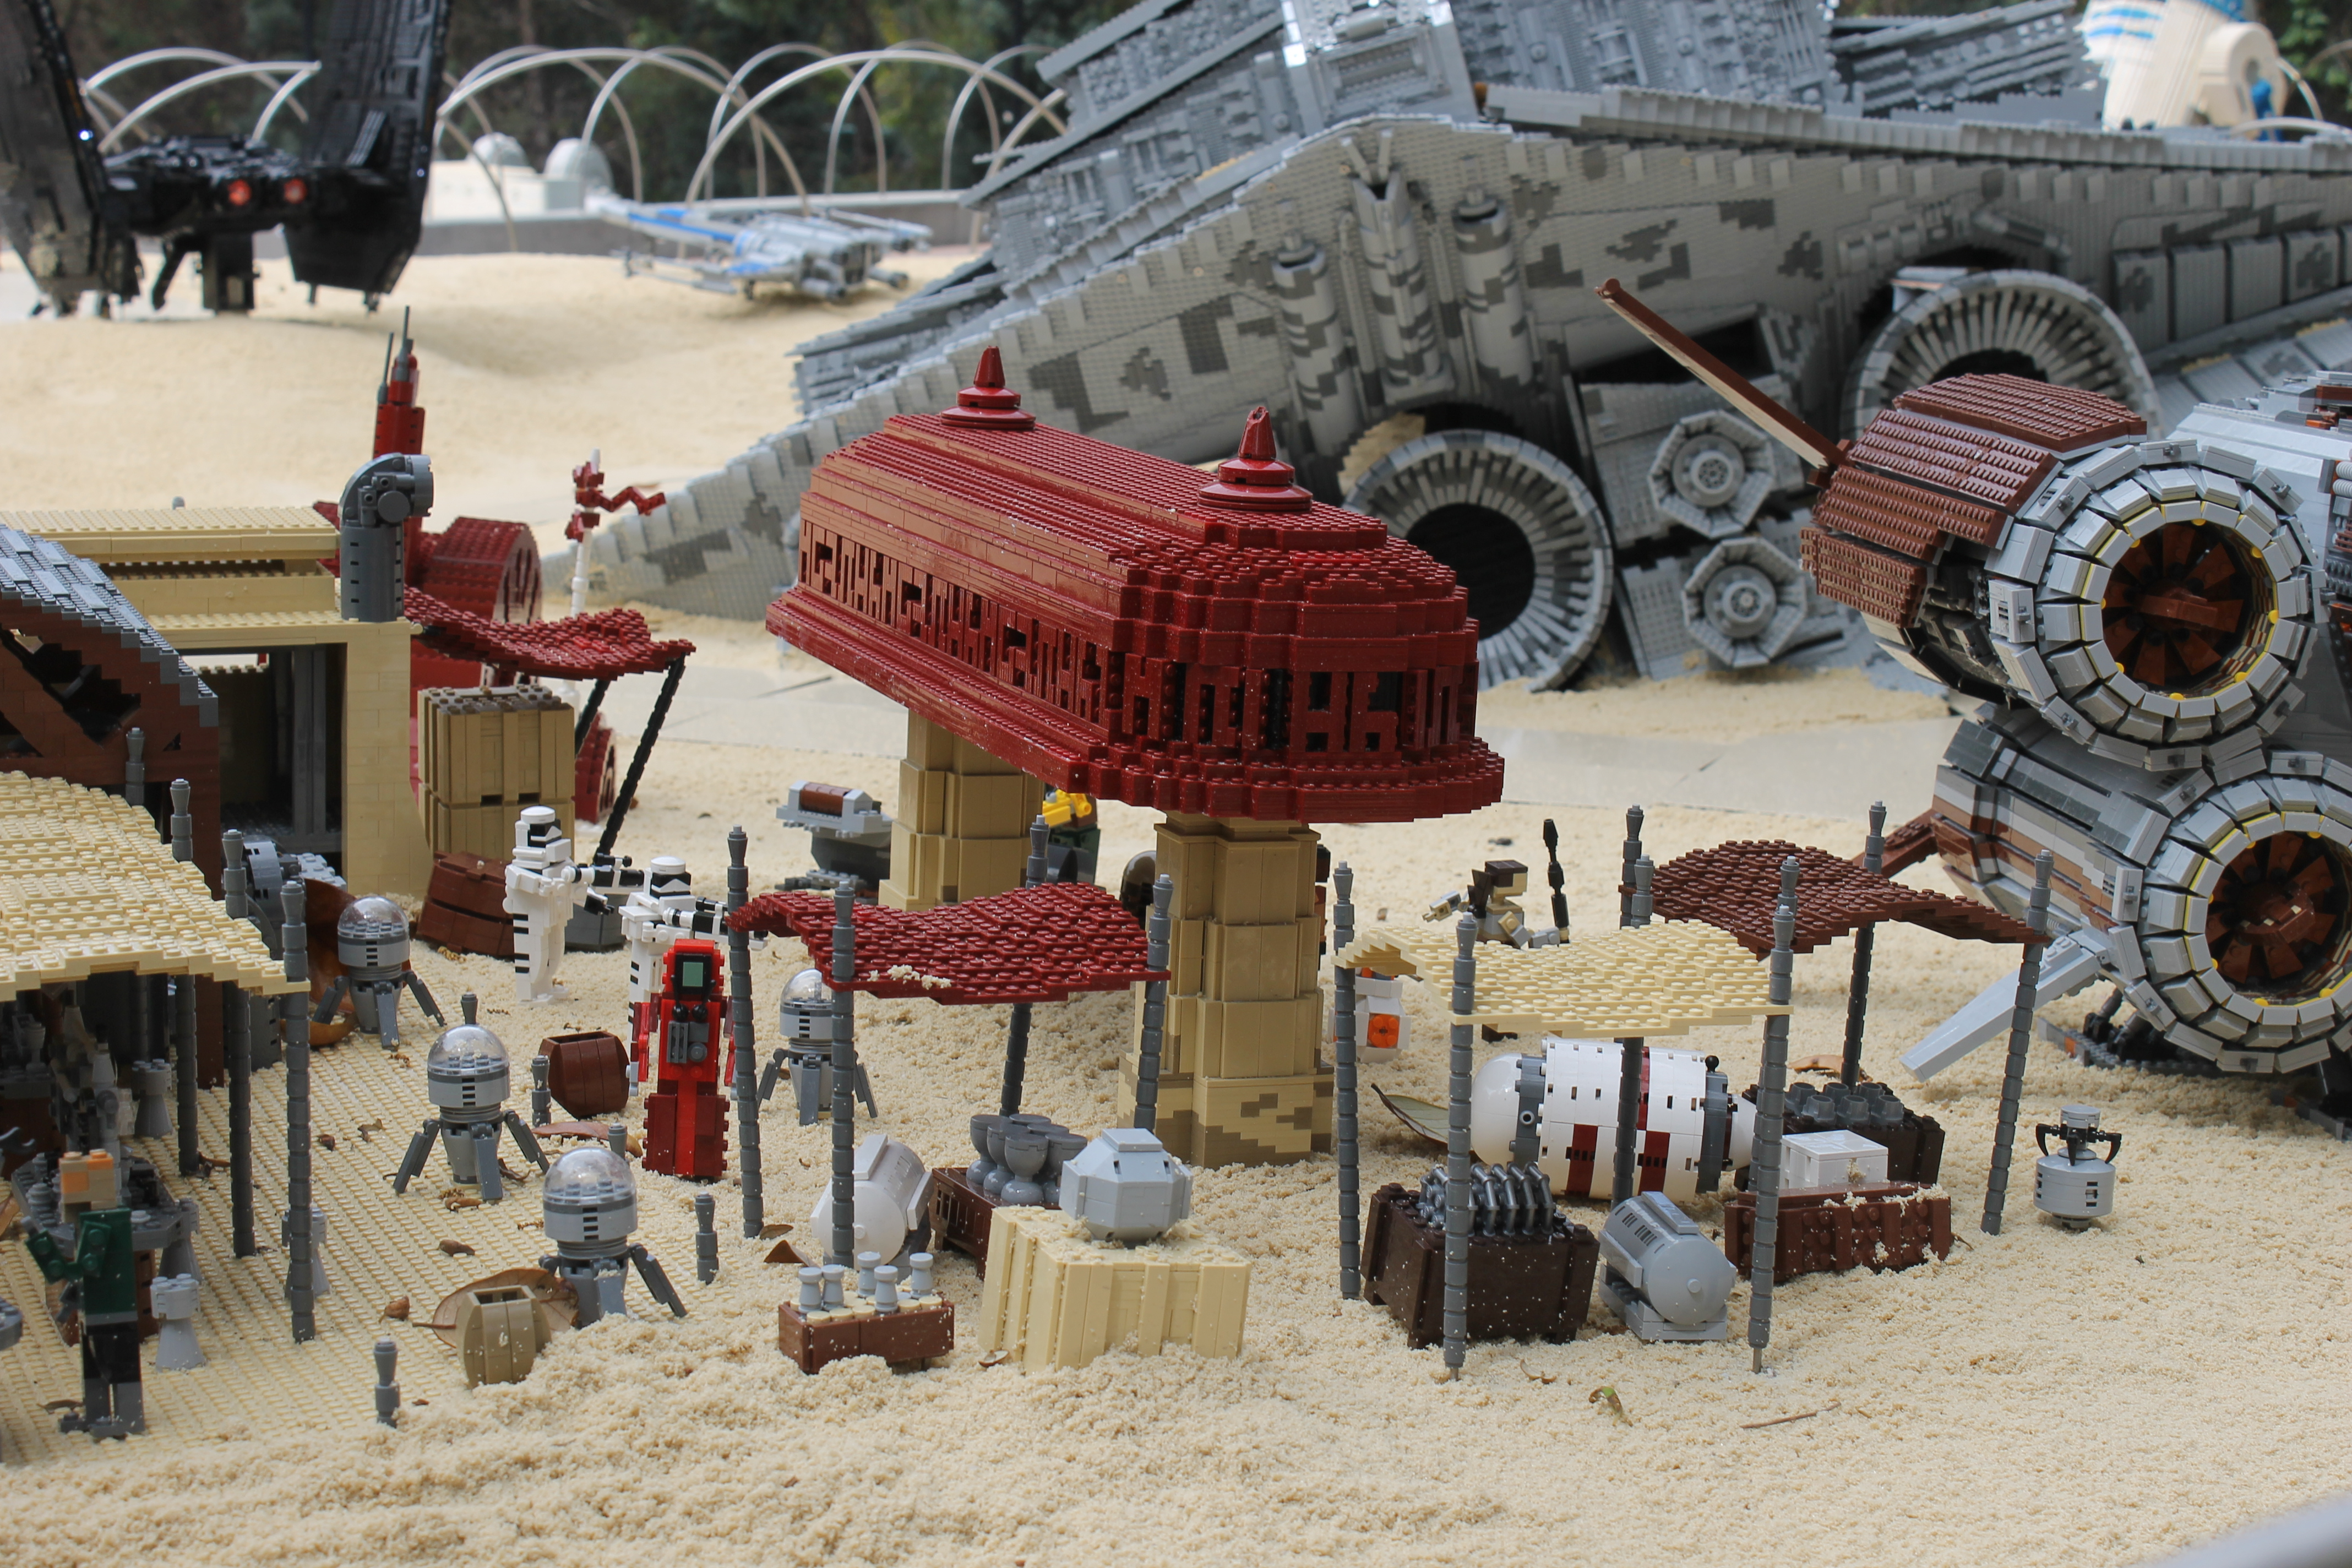 Feel The Force At Legoland Star Wars Days